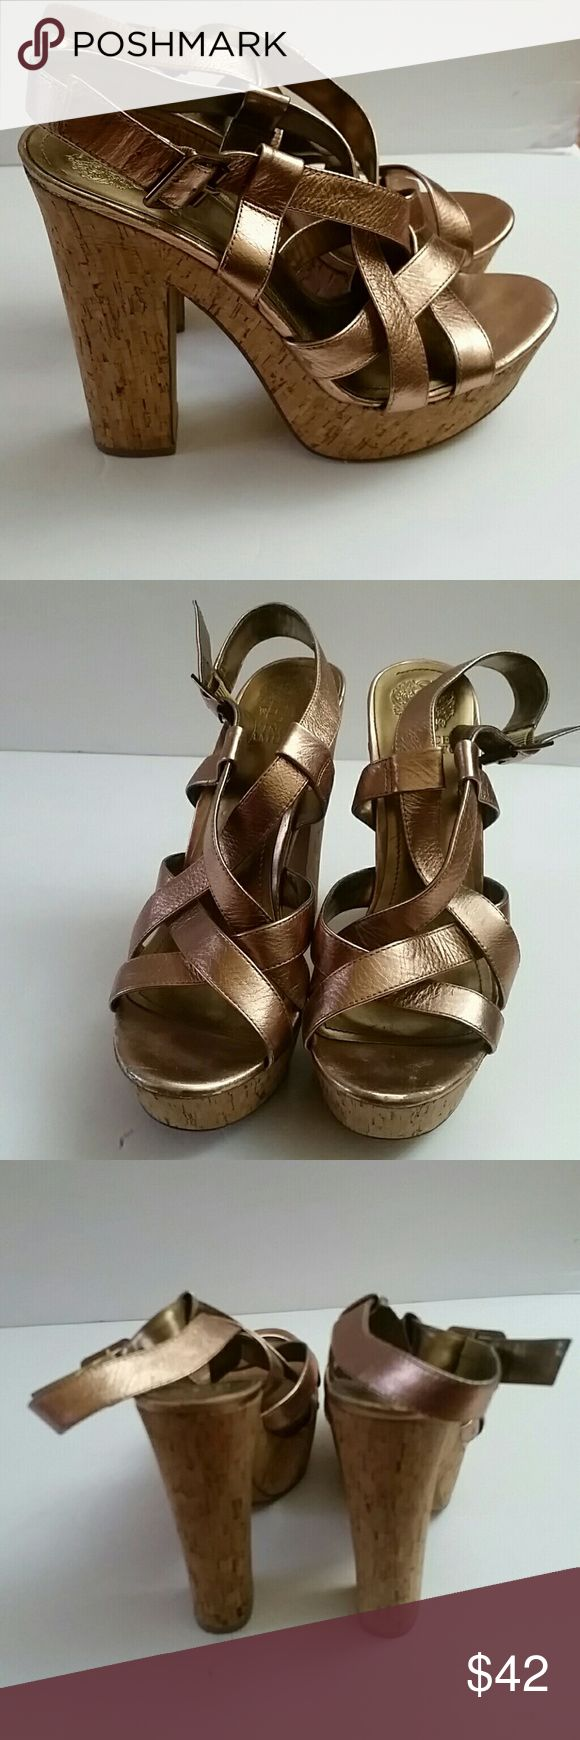 VINCE CAMUTO rose gold strappy sandals sz 10 Platform strappy Rose gold sandal A Spring and Summer treat   Some signs of wear  Sz 10 Vince Camuto Shoes Platforms